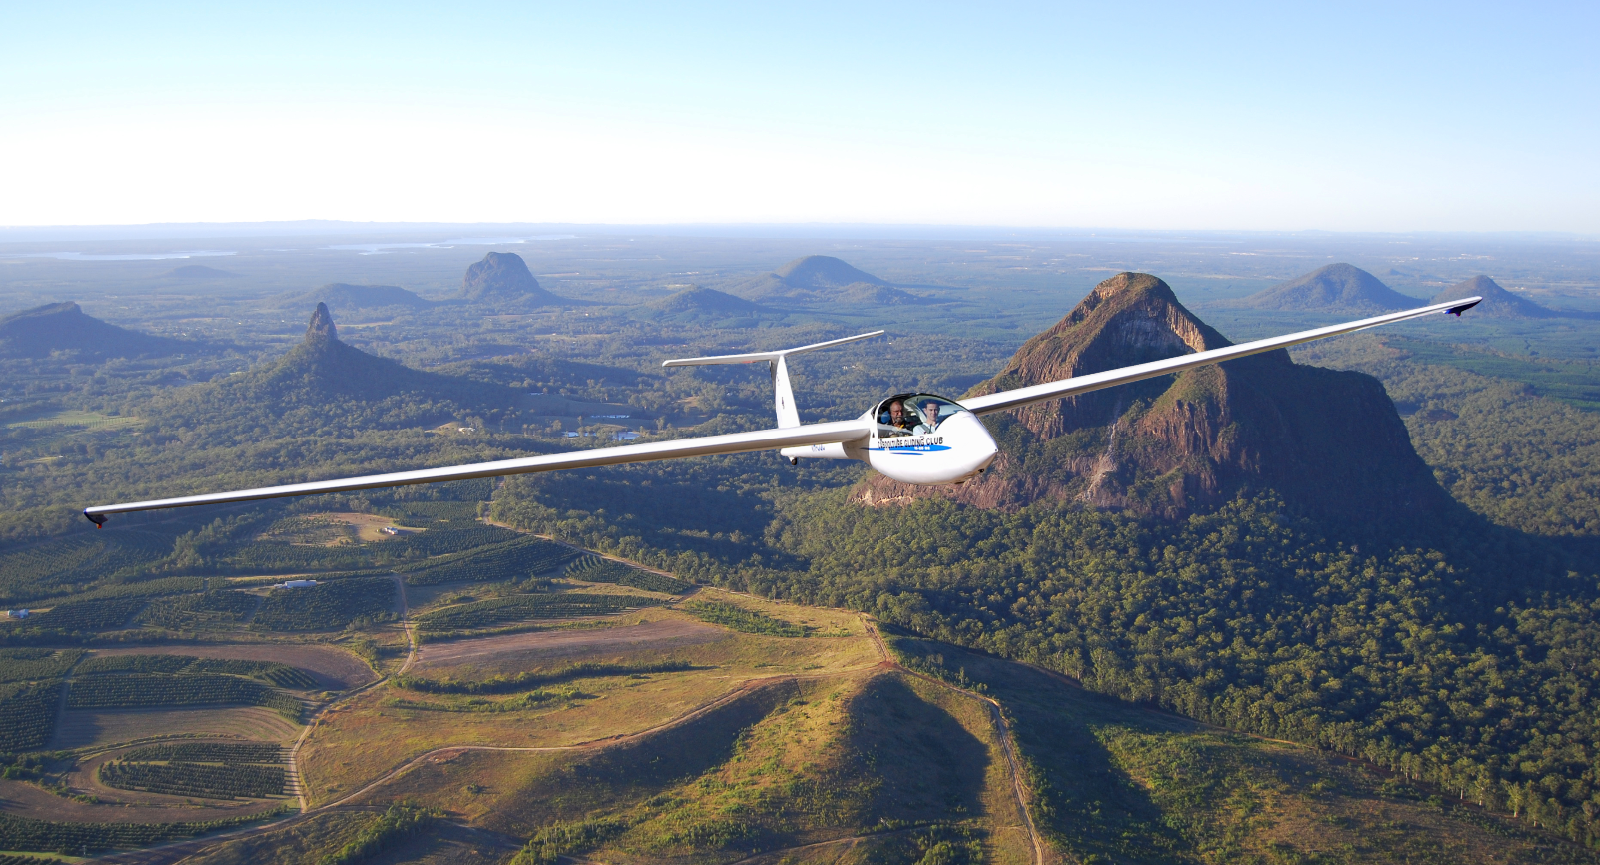 Caboolture Gliding Club